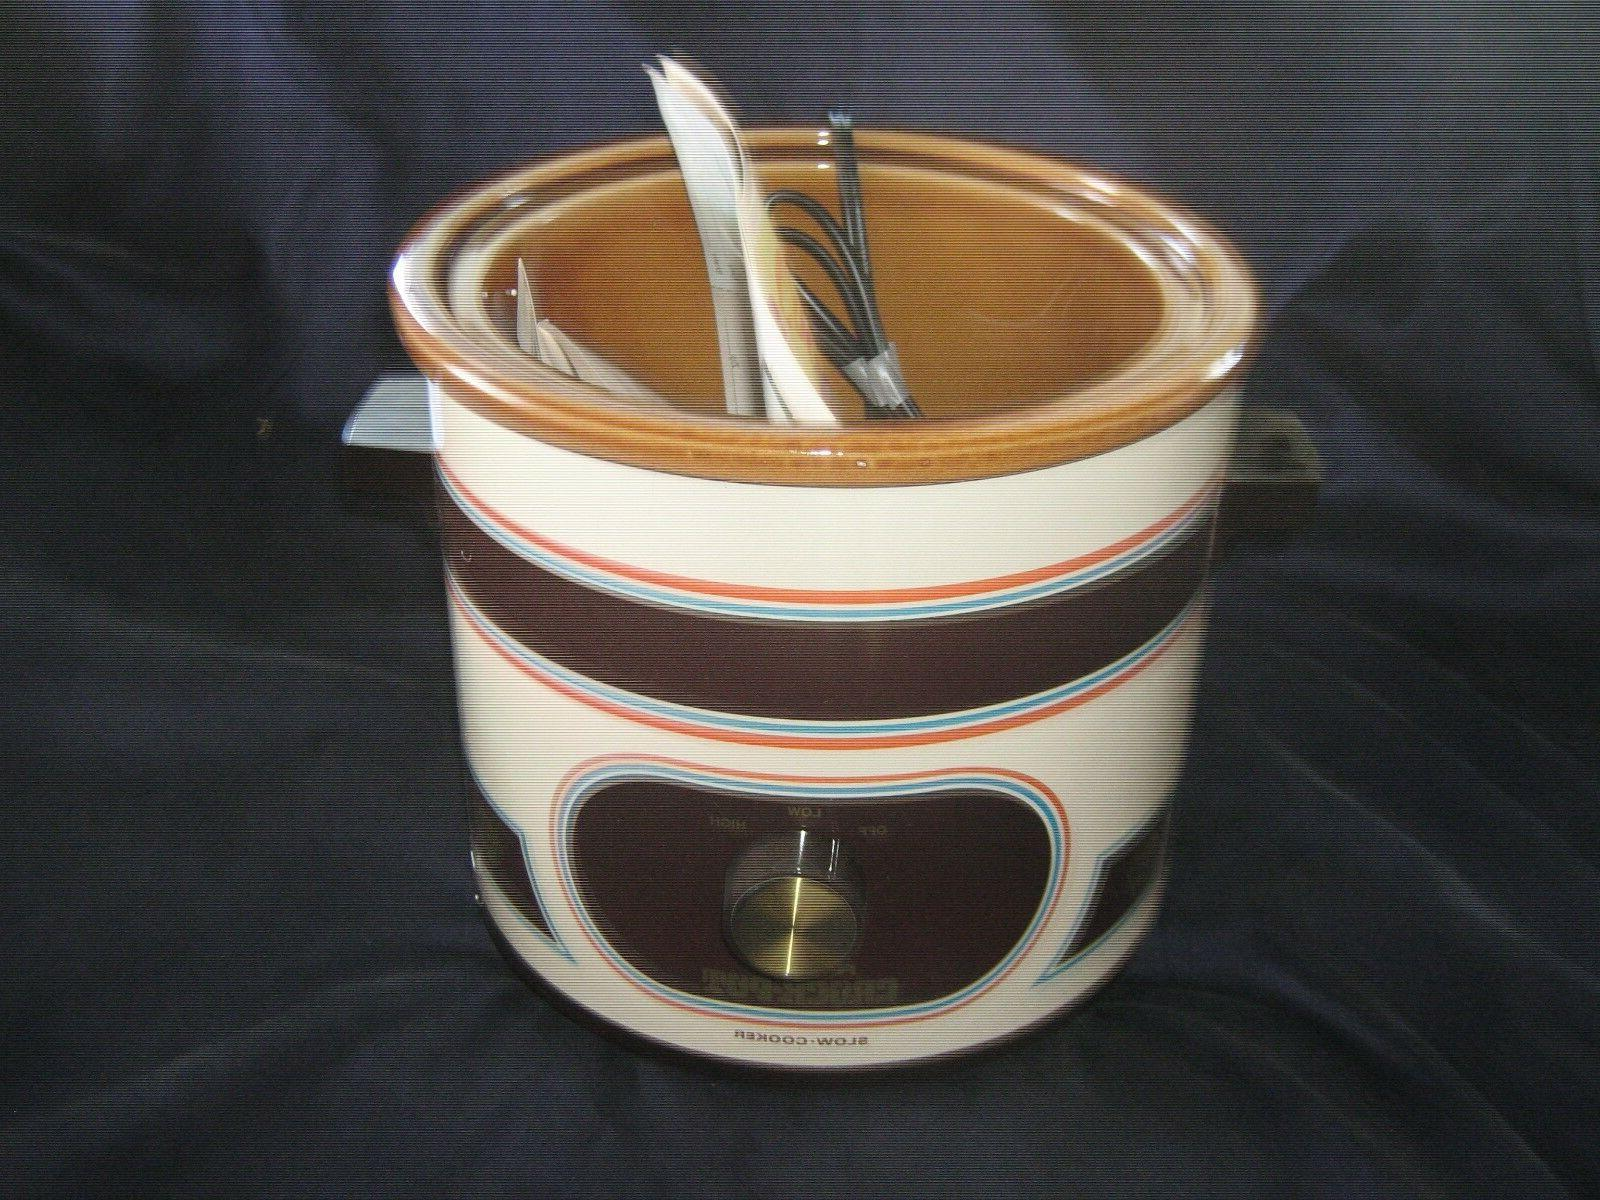 Vintage Crock Pot/Slow Cooker, 3-1/2 1970's Model ALMOND